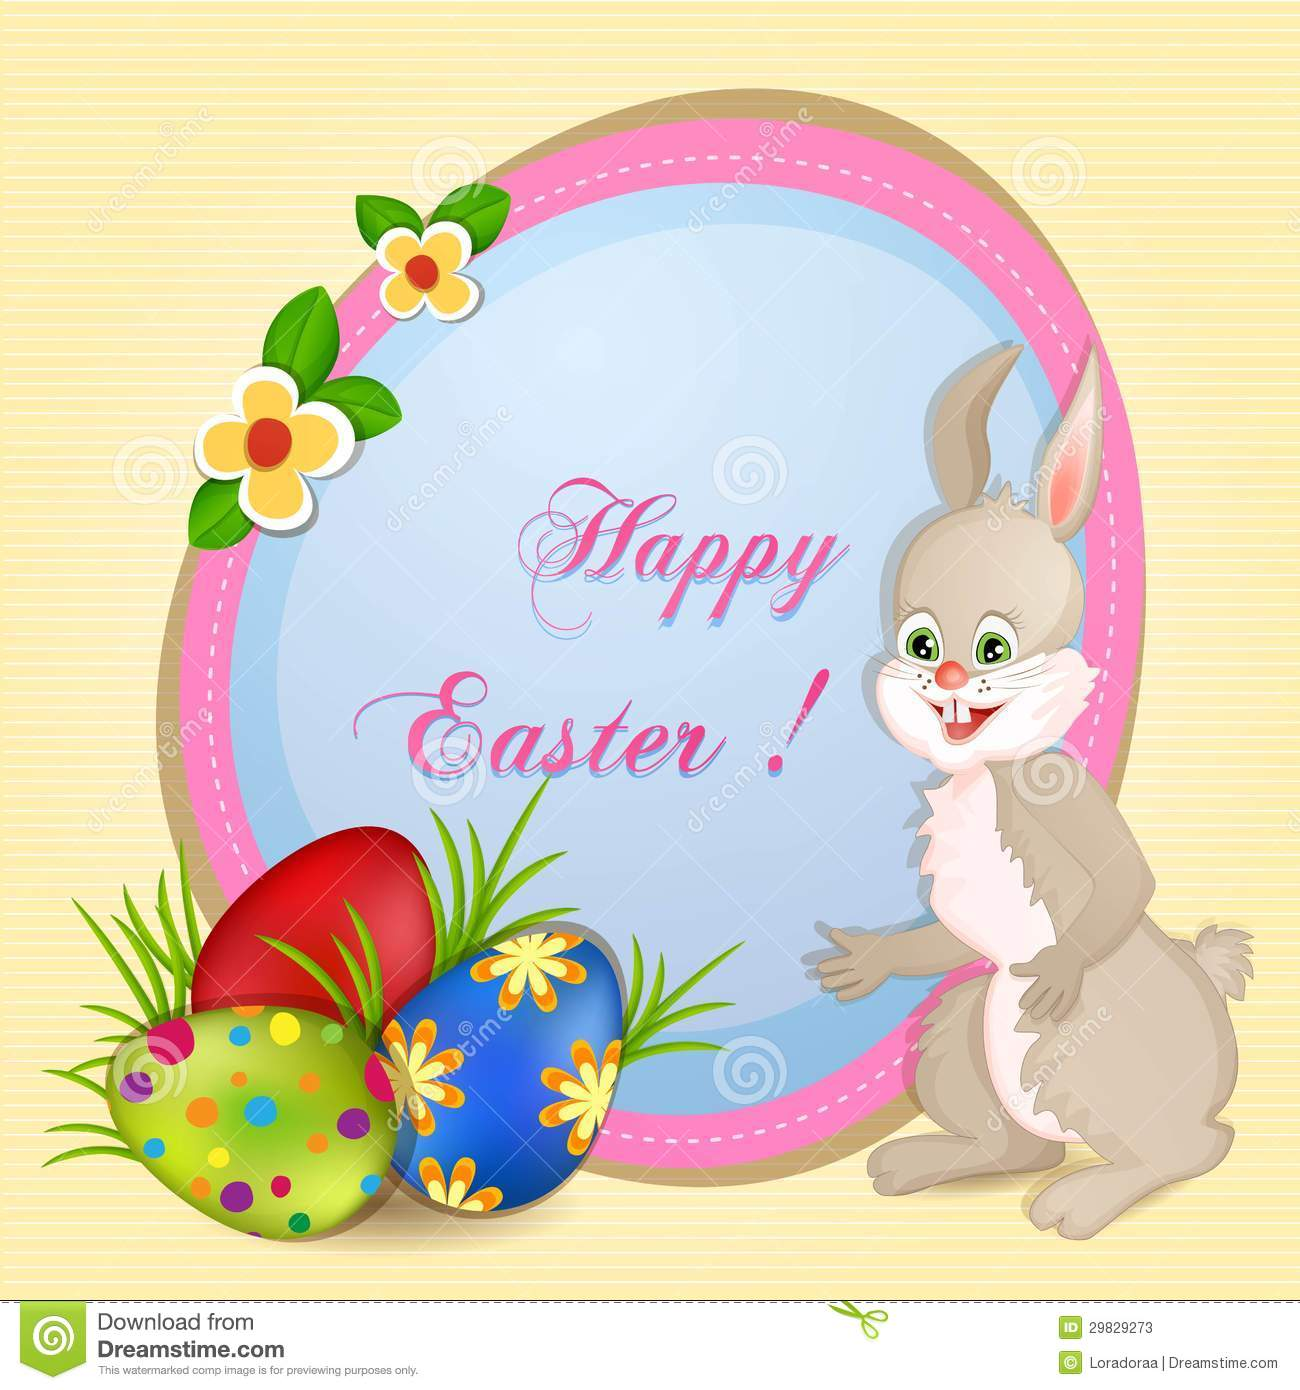 Easter Greeting Card Stock Photos - Image: 29829273